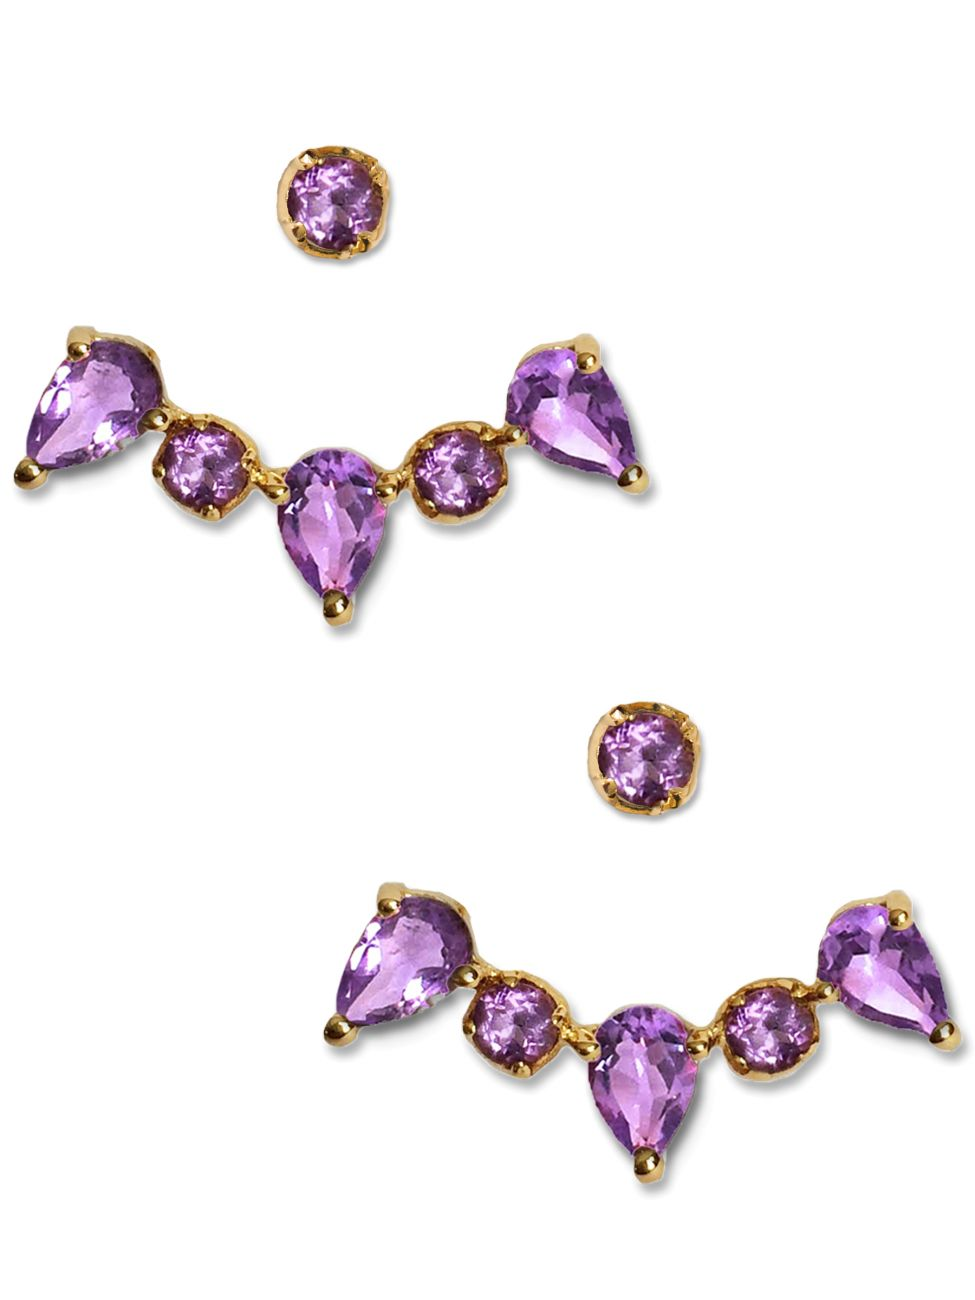 Clara Ear Jackets<br /><i><small>18K Gold Plated with Amethyst</small></i><br />